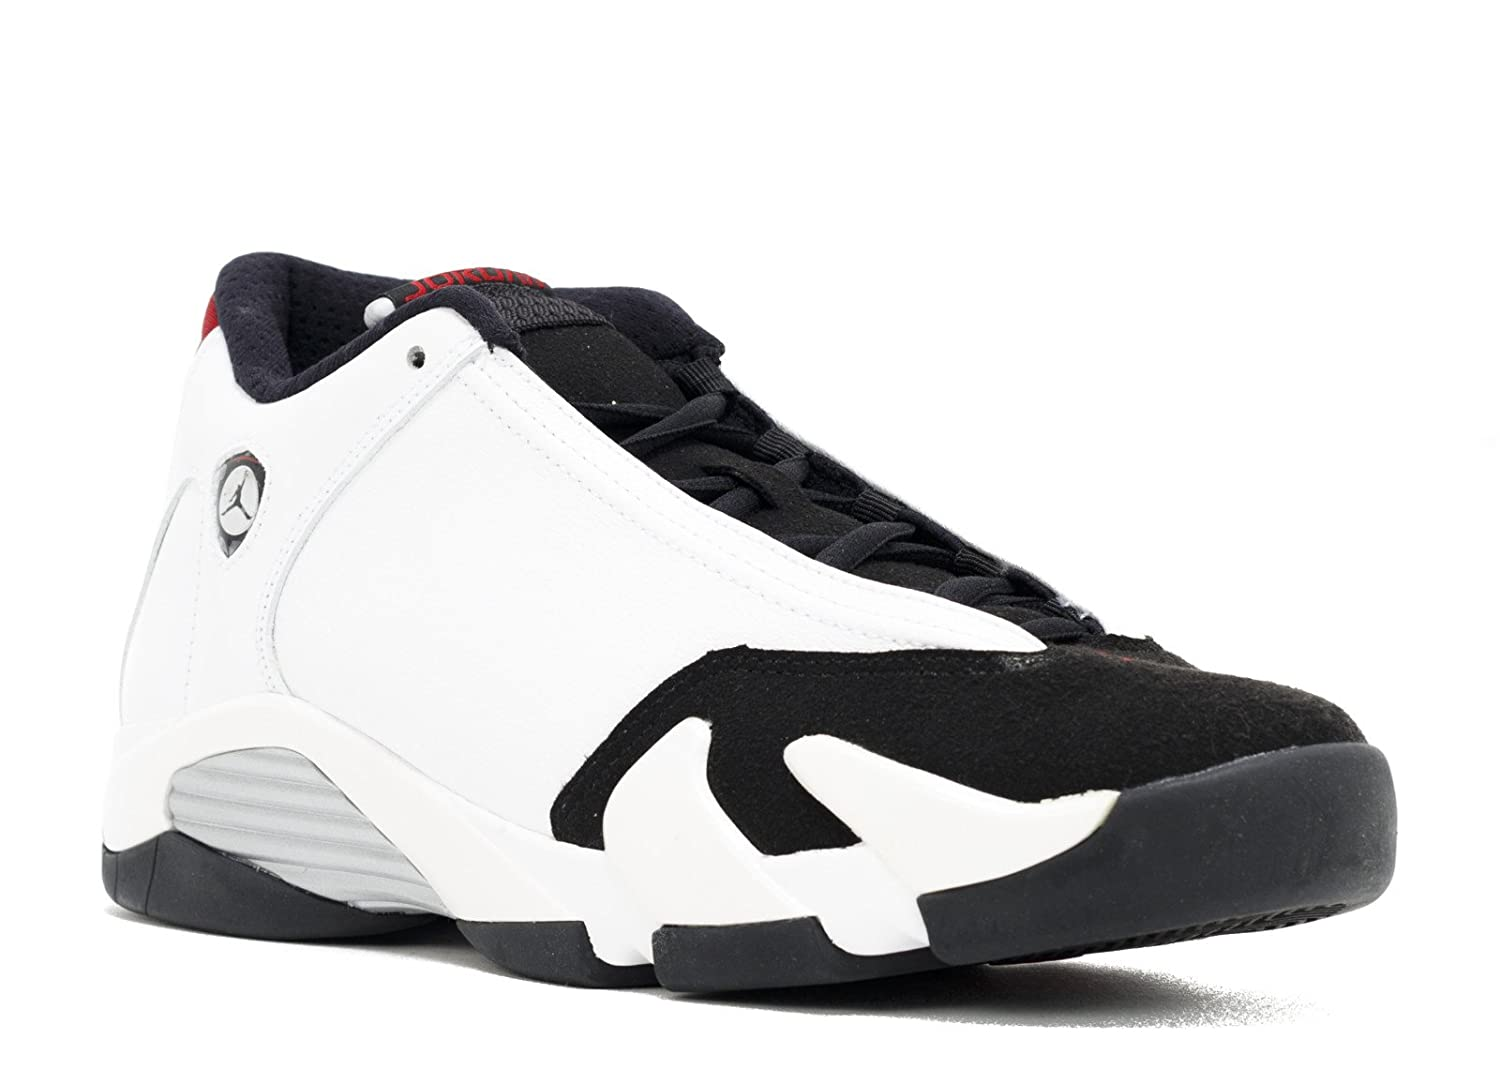 on sale 6b678 c6751 Jordan Air 14 Retro BG Big Kids Shoes White/Black-Varsity Red-Metallic  Silver 654963-102